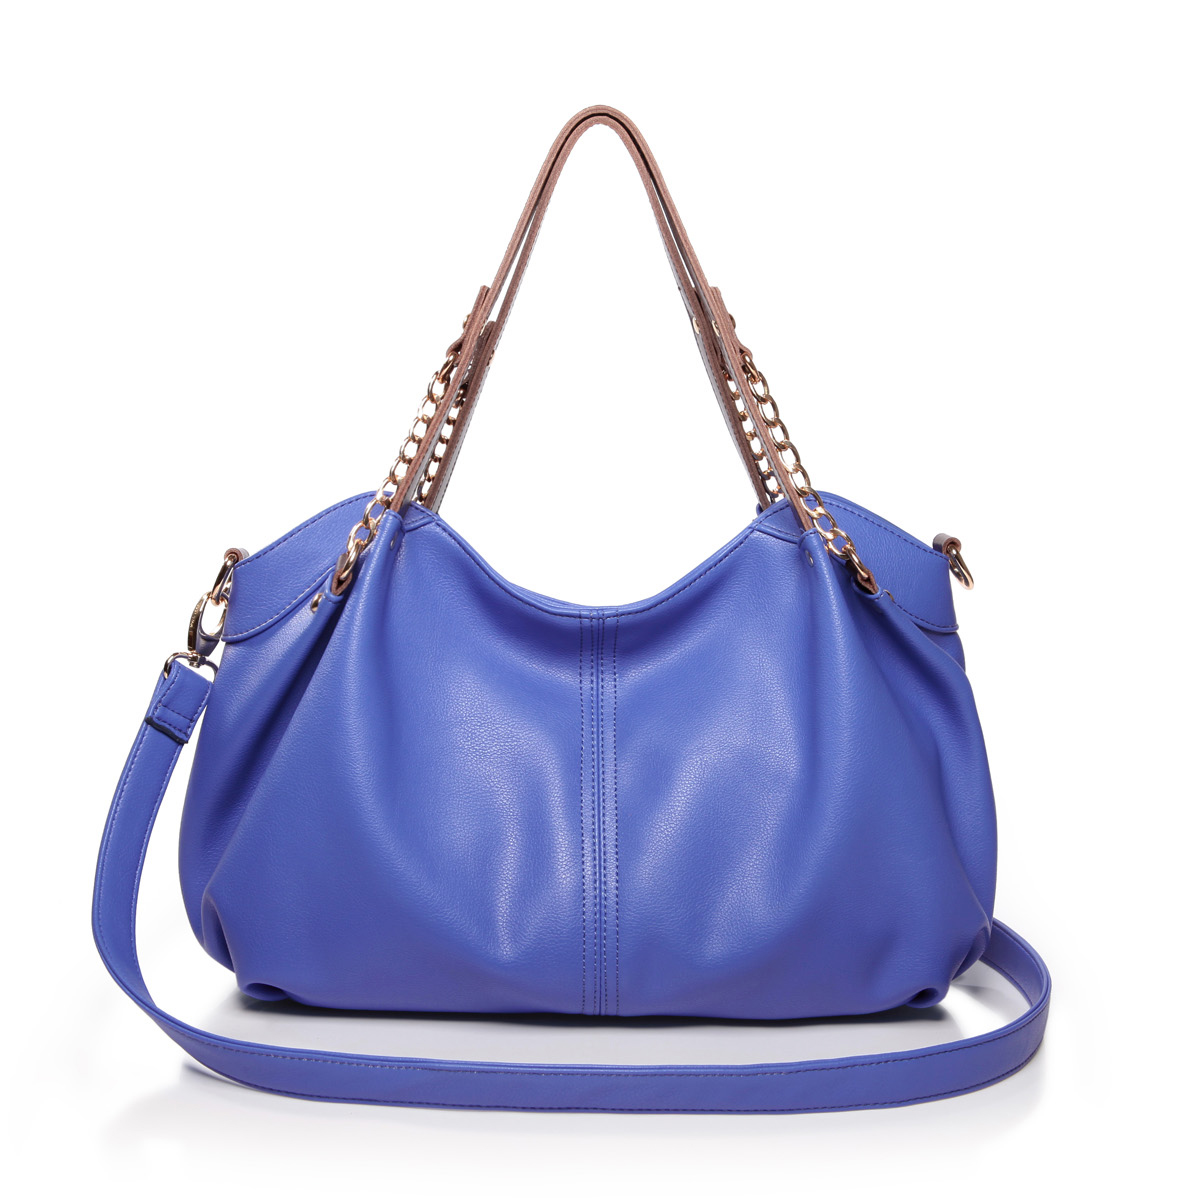 ... : Home  Women's Bags  Shoulder Bags  Time series leather bags blue